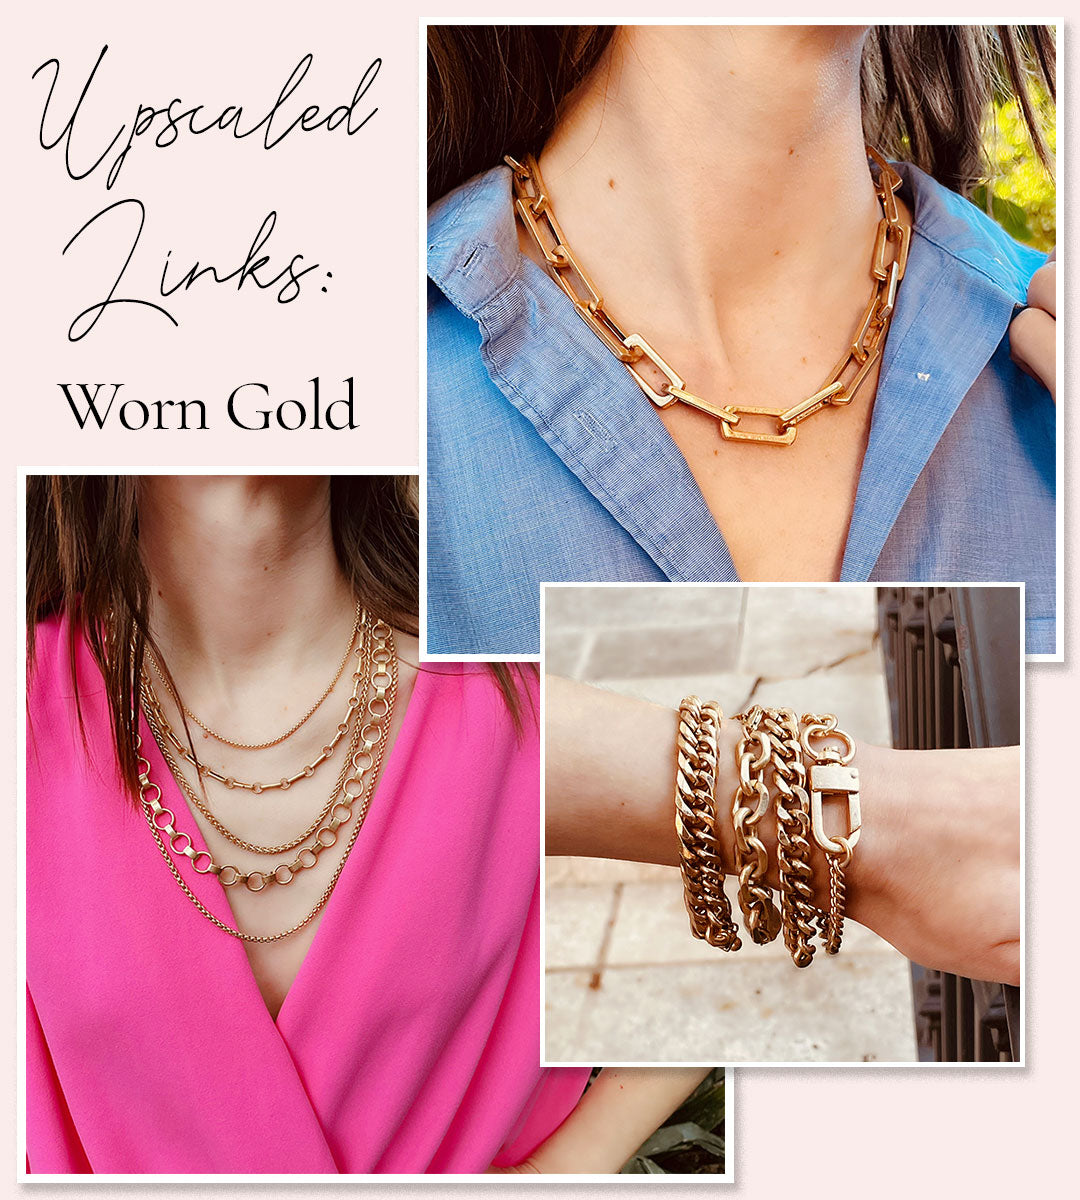 Upscaled Links: Worn Gold Necklaces, Bracelets & Earrings